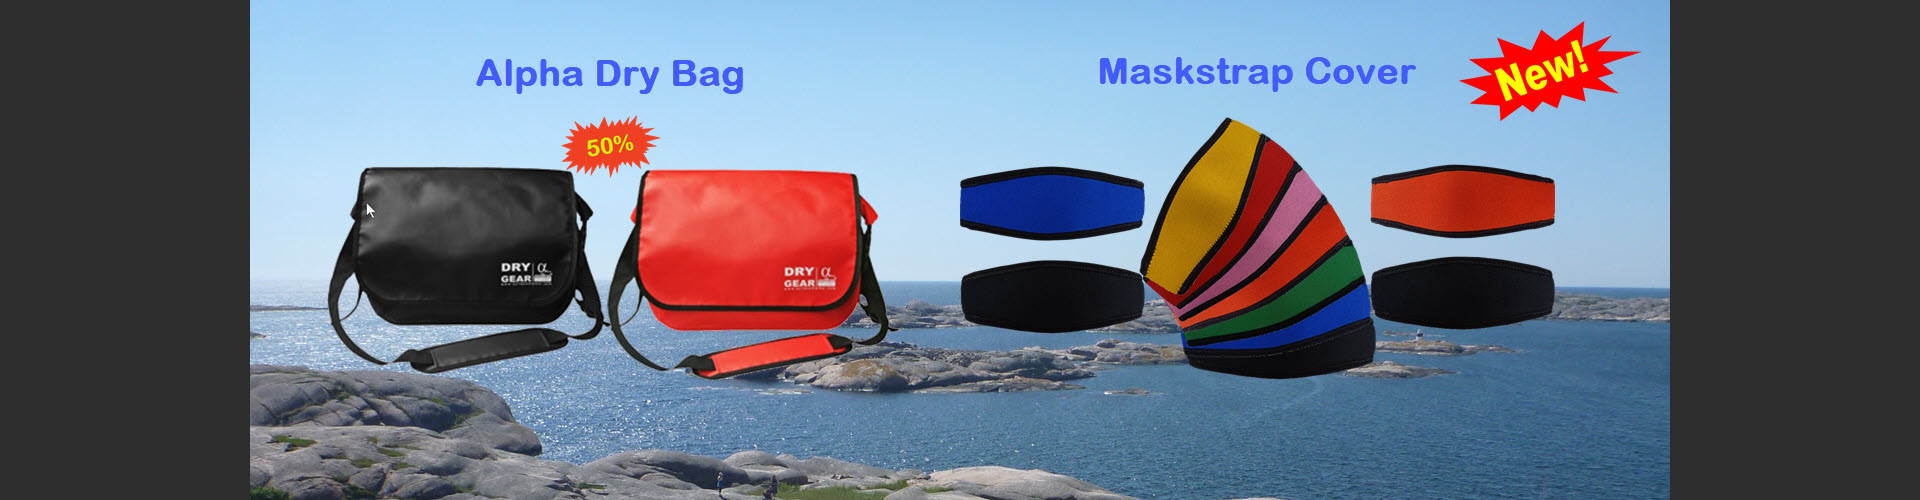 Alpha Bag and Maskstrap Cover